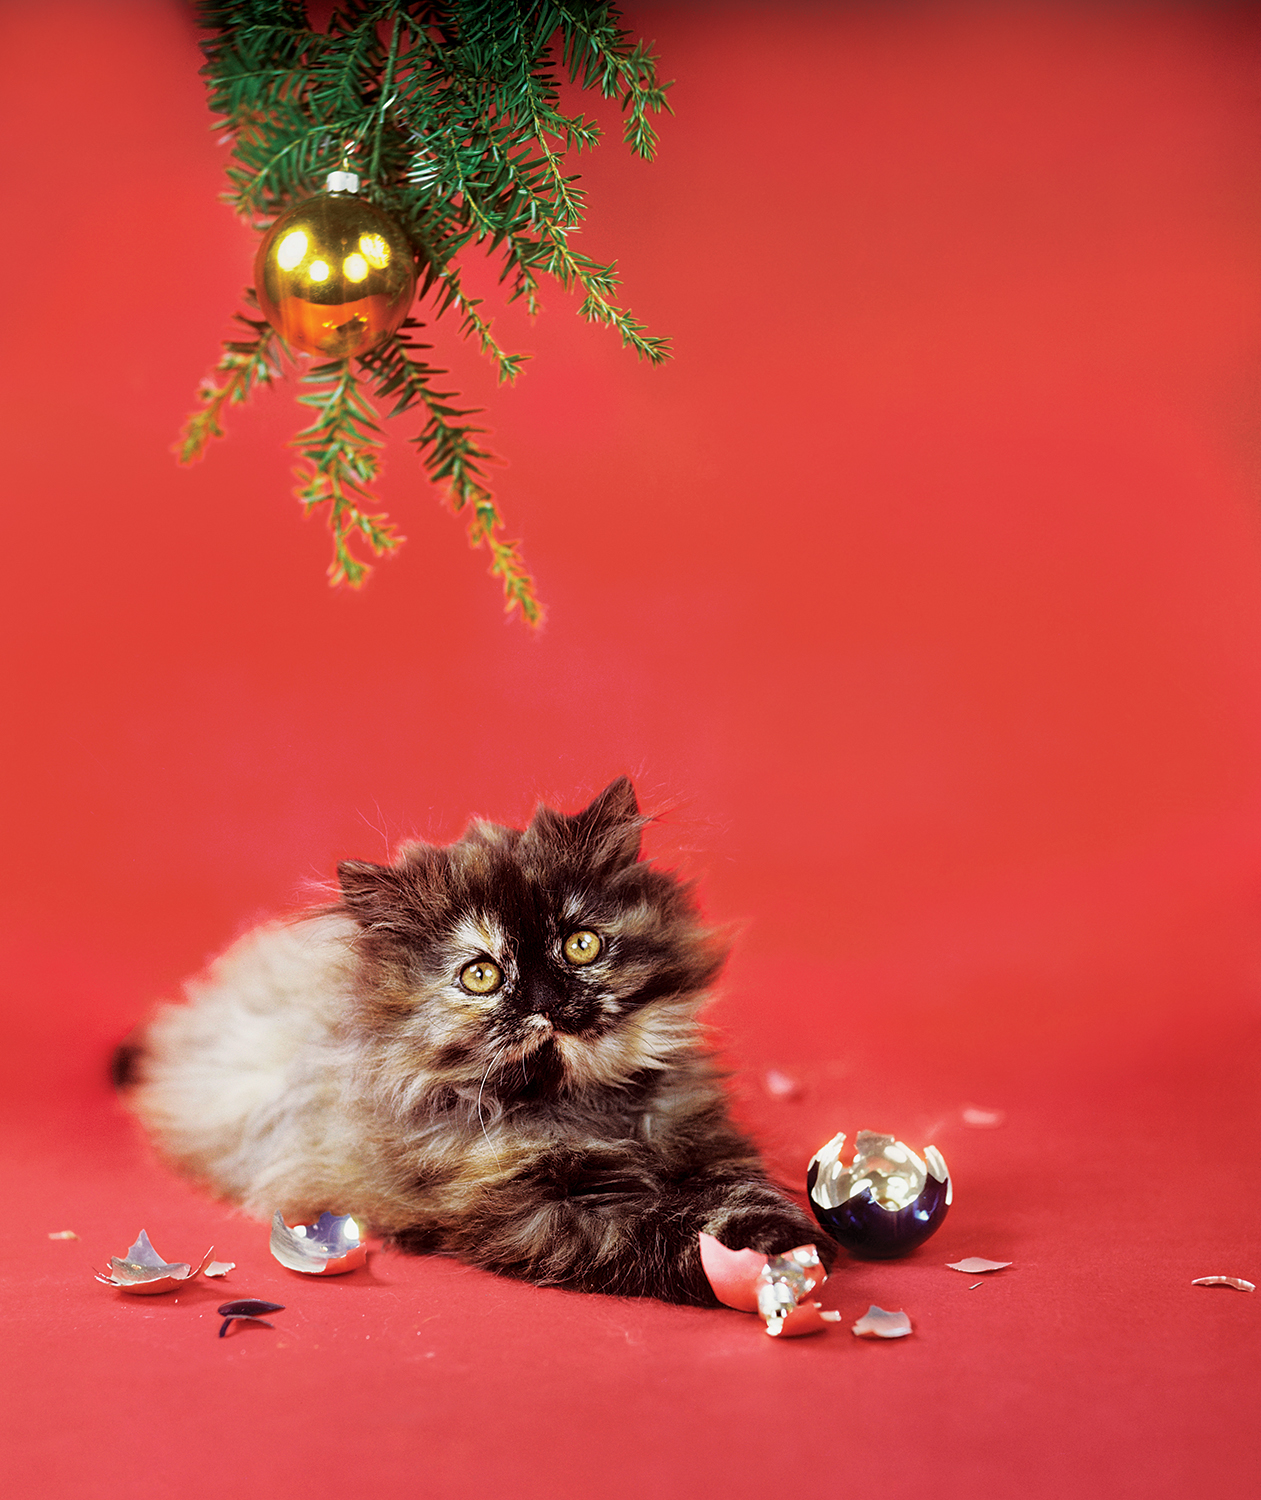 Cat with broken Christmas ornament